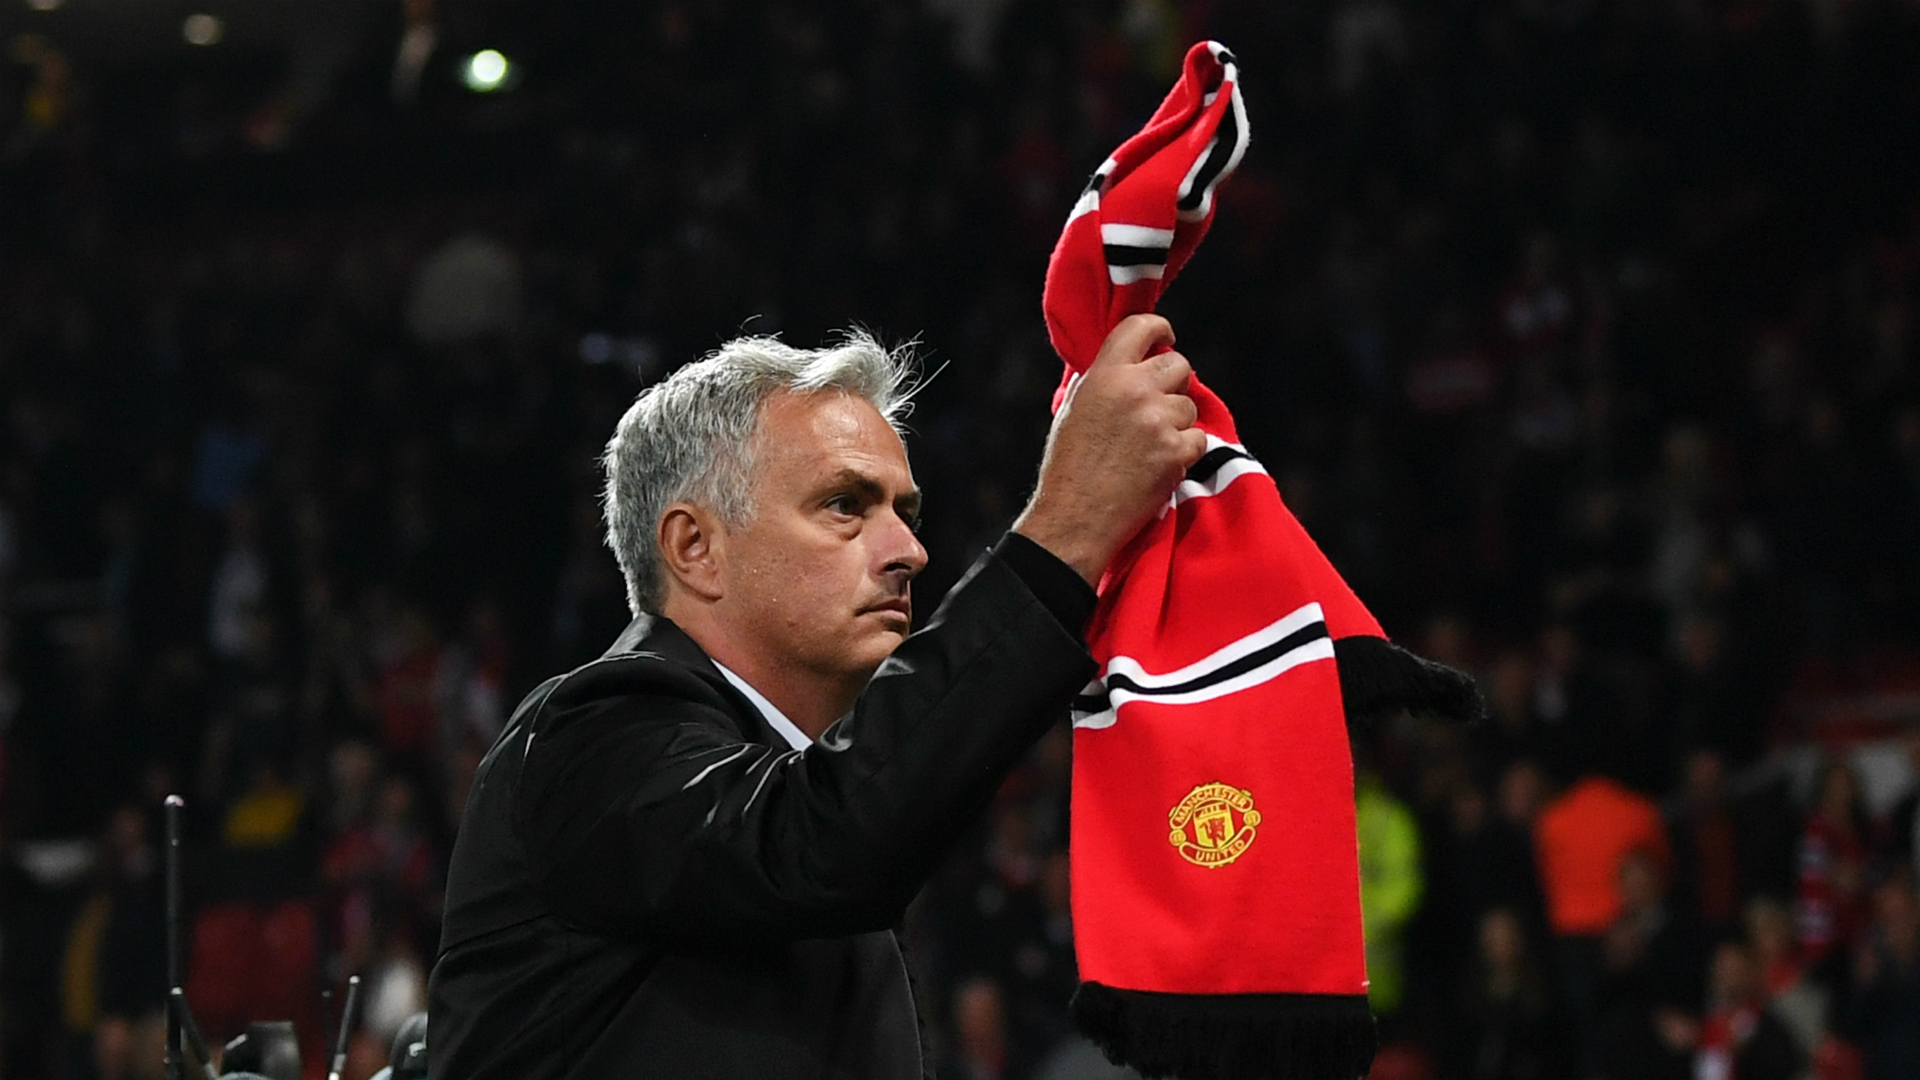 Mourinho returns to Old Trafford: Jose and Spurs on Manchester mission